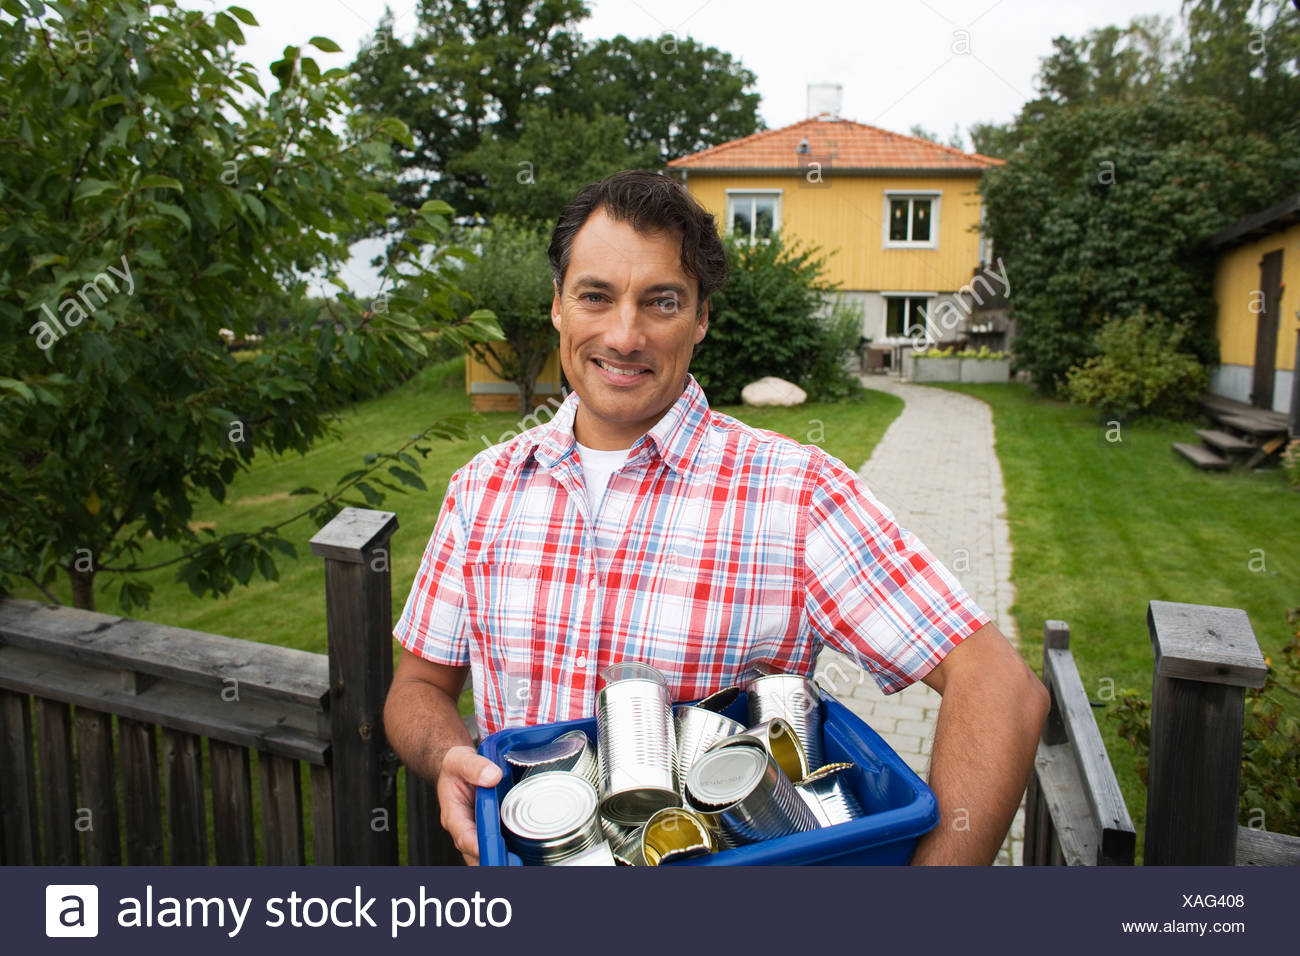 A man recycling aluminium cans Sweden. - Stock Image